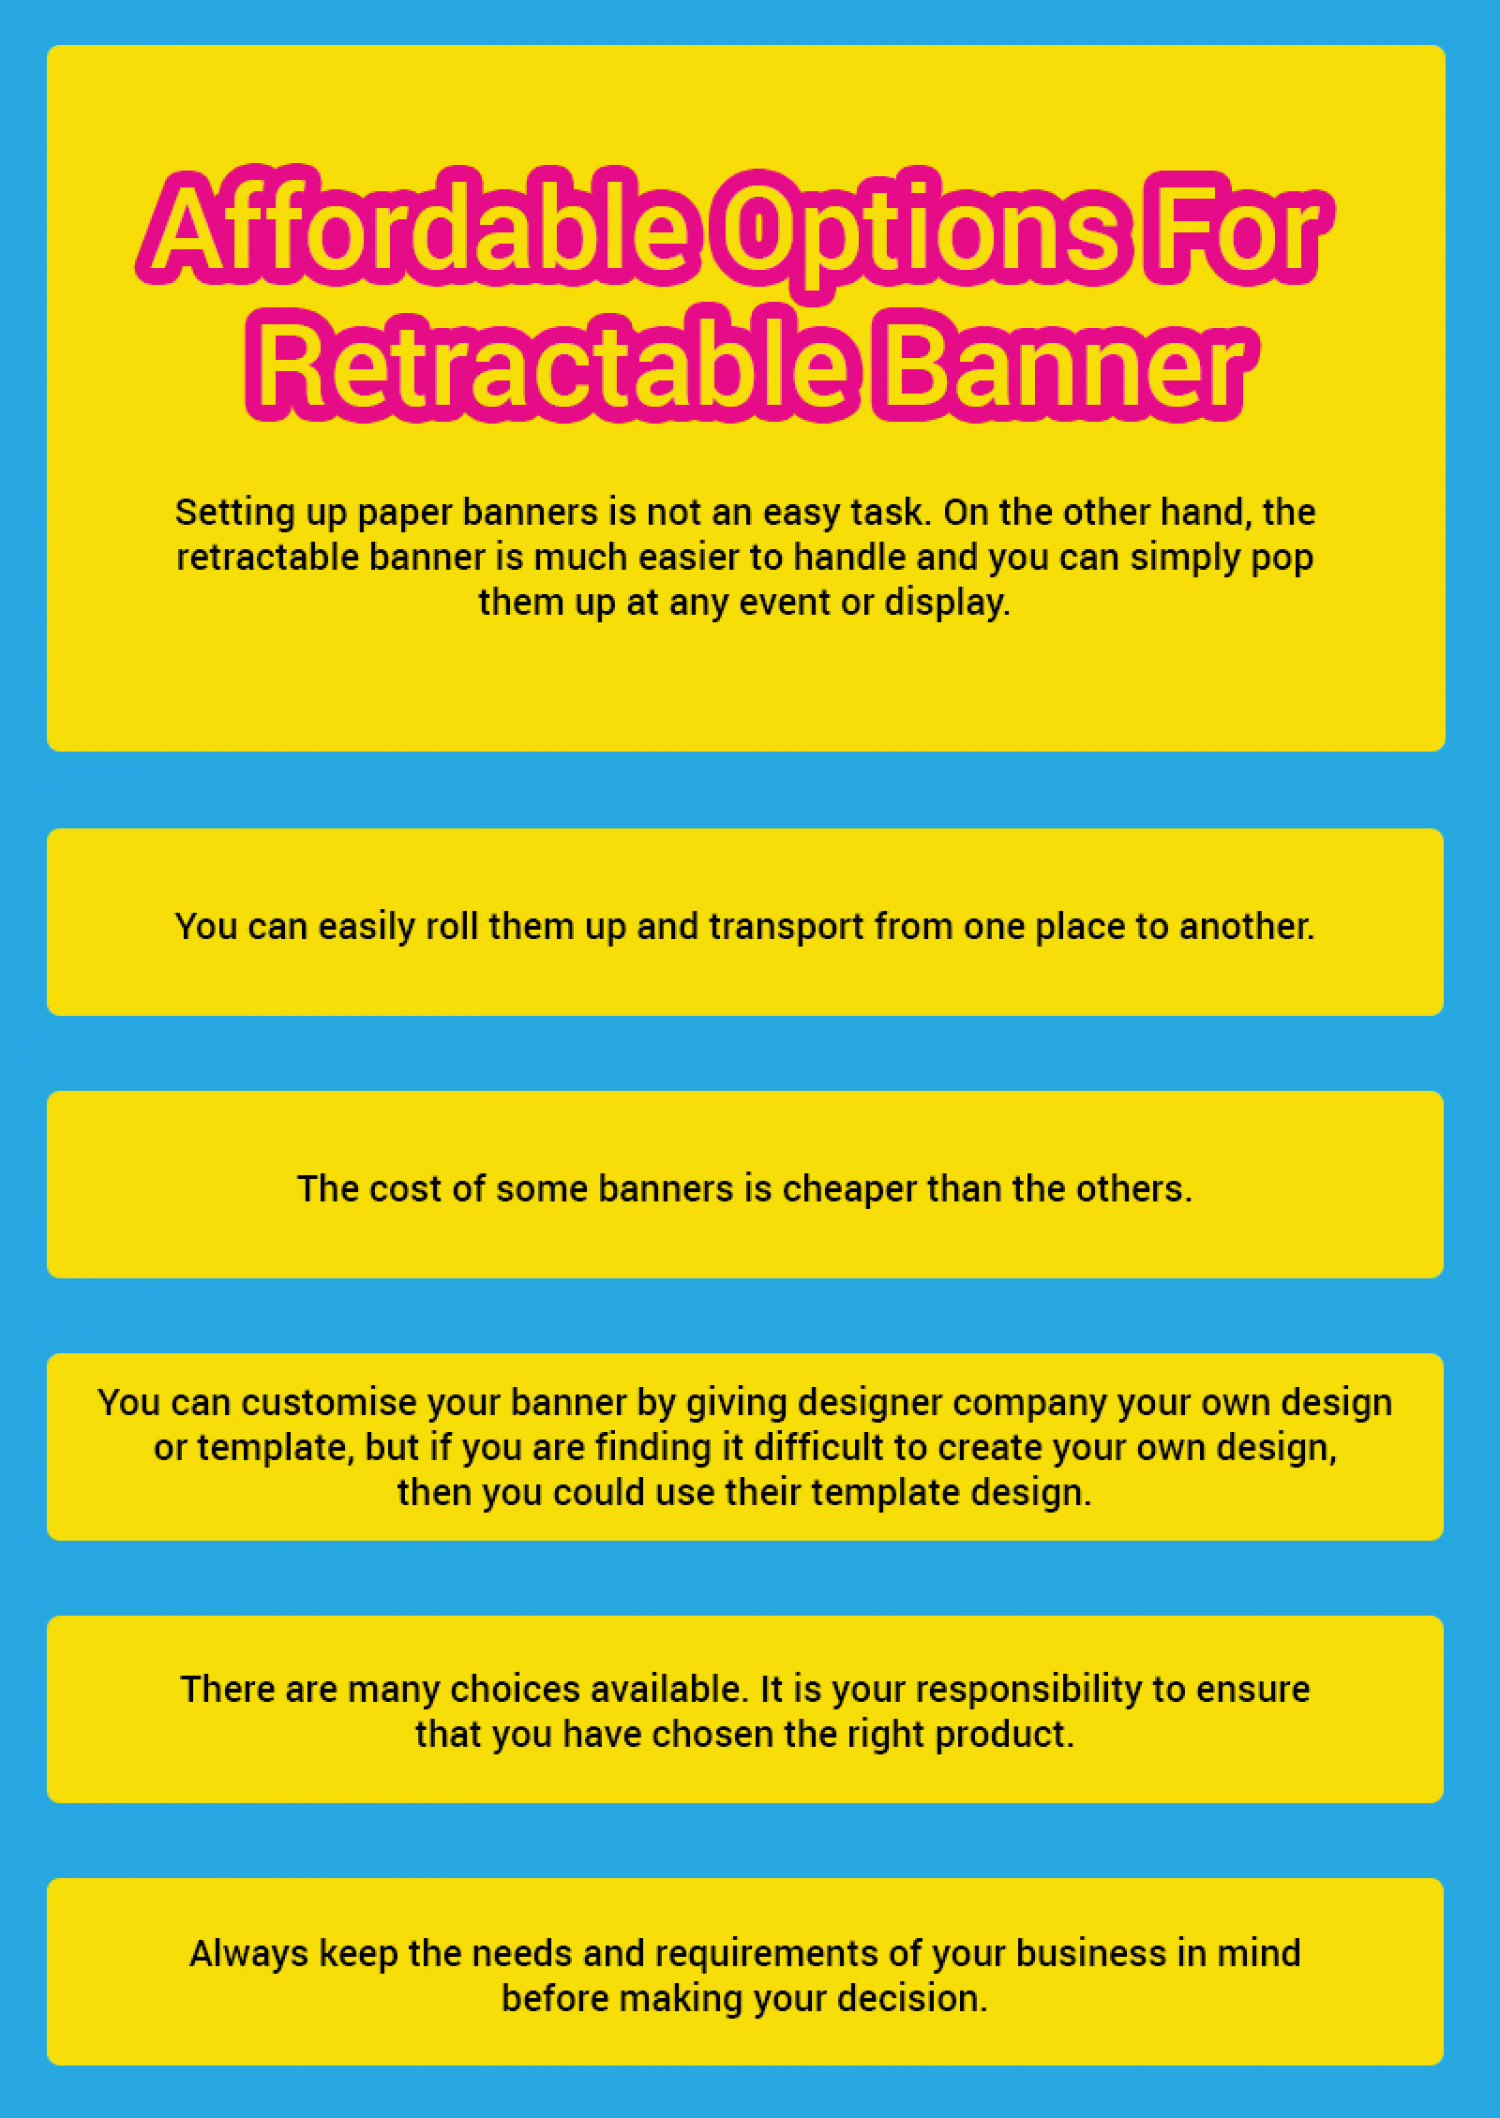 Affordable options for Retractable Banner Infographic